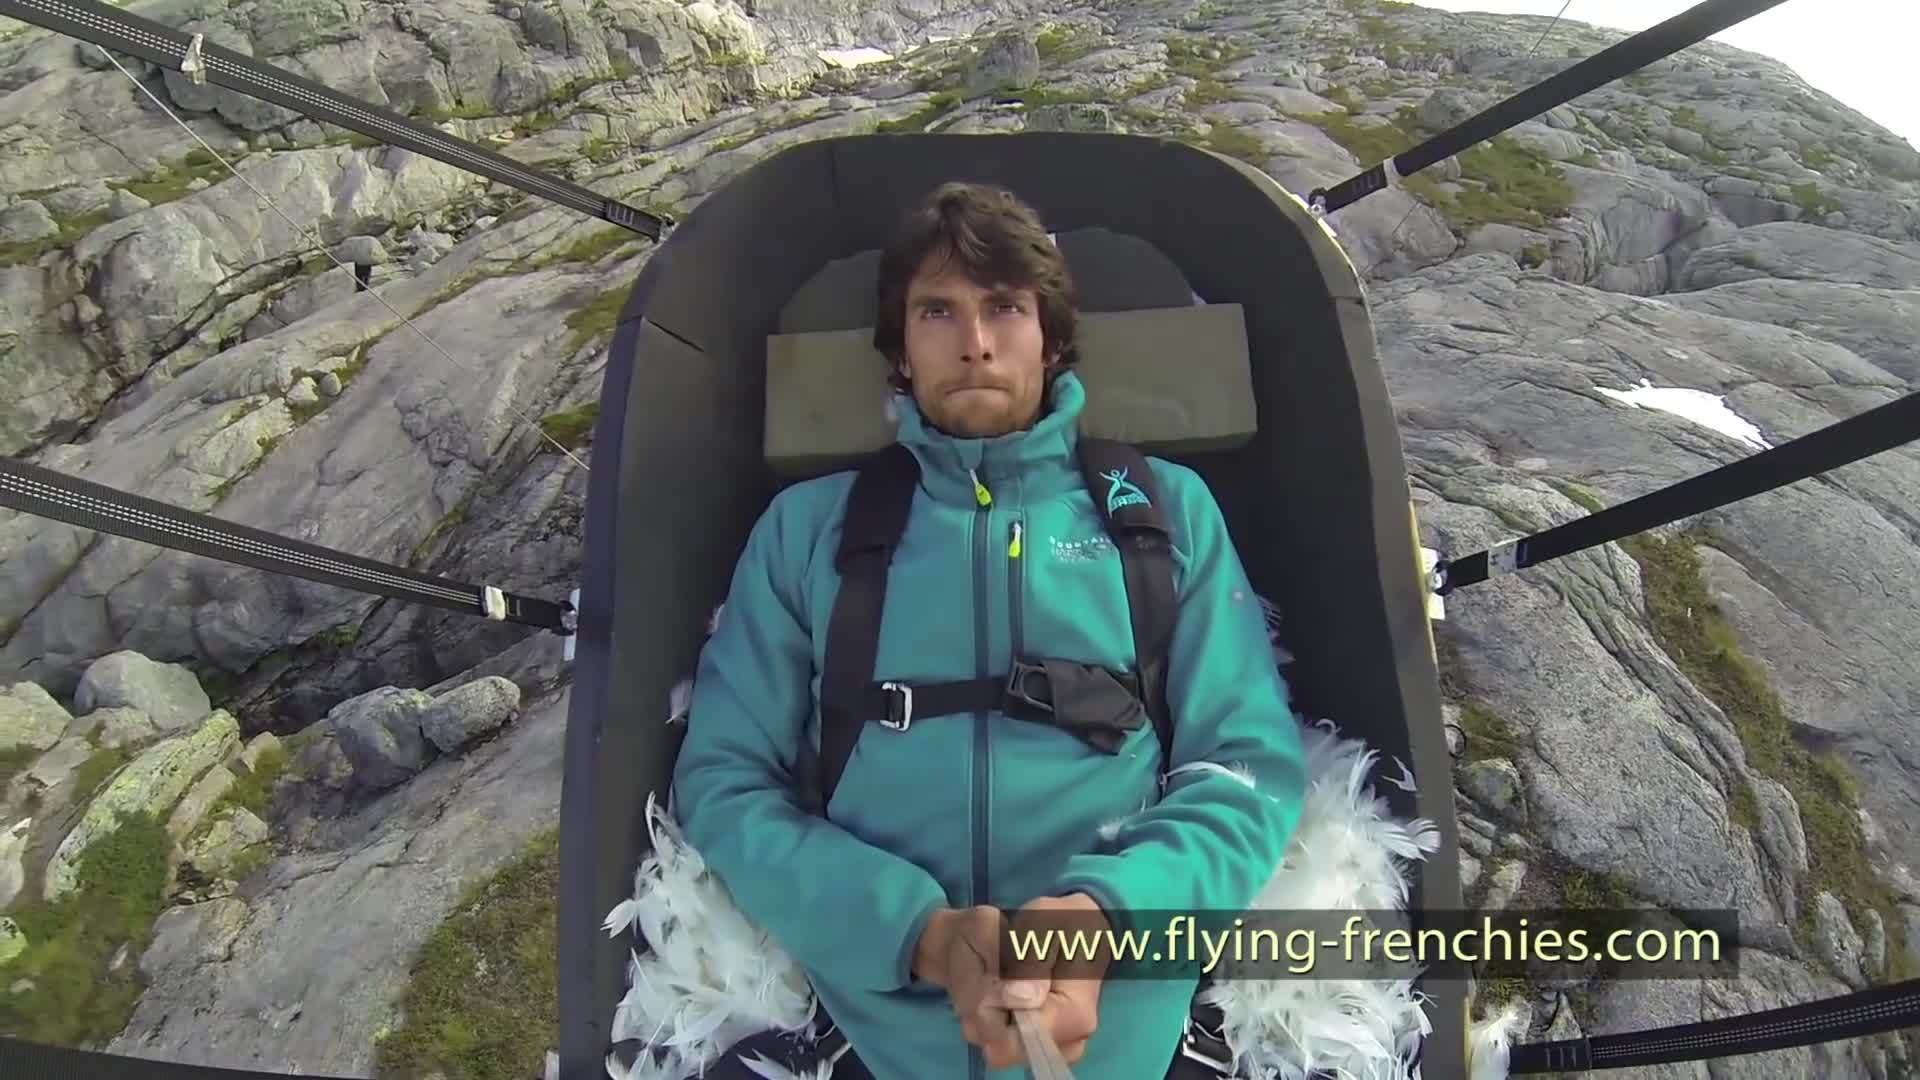 BASE Jumping (Sport), flying frenchies, holdmyredbull, OFFICIAL : The Flying Frenchies catapult to base jump, angry bird style GIFs